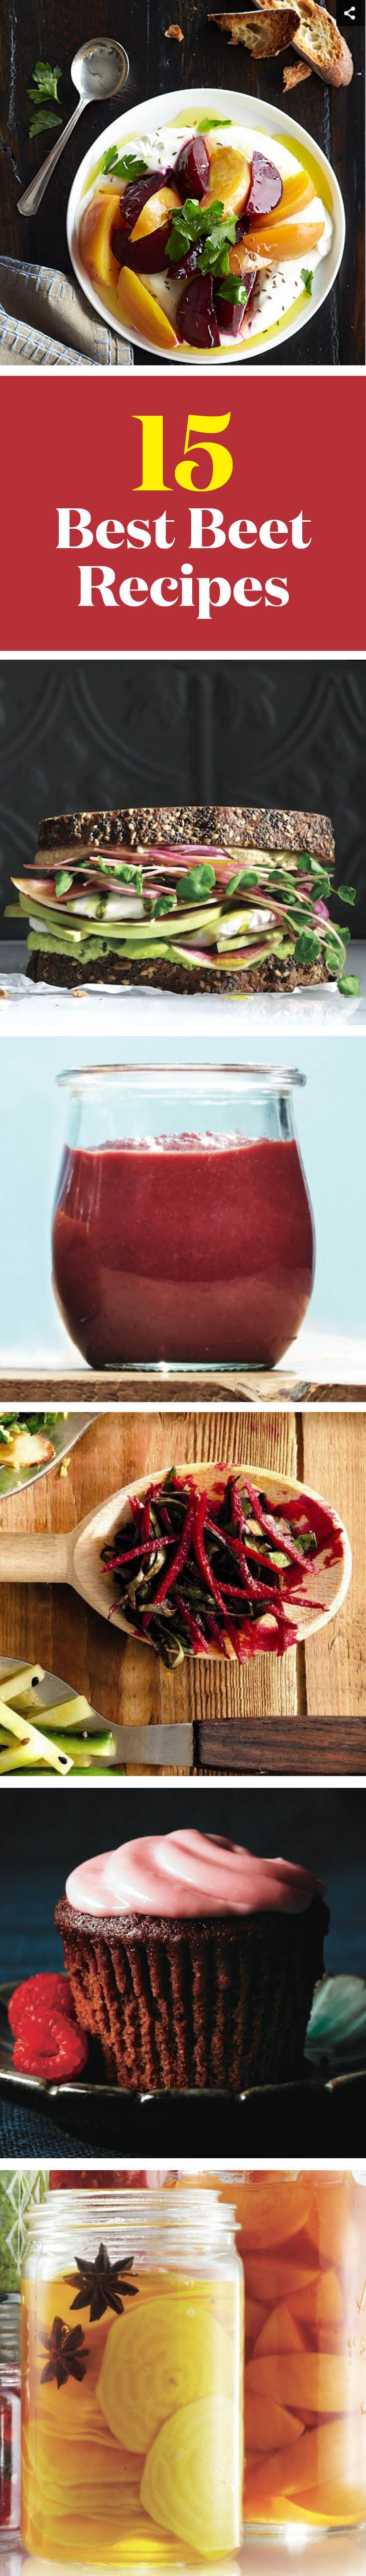 Rich in vitamins, minerals and antioxidants, beets are also incredibly versatile, lending their sweet earthiness to colourful sides, salads, risottos — and dessert! Here are our best beet recipes.